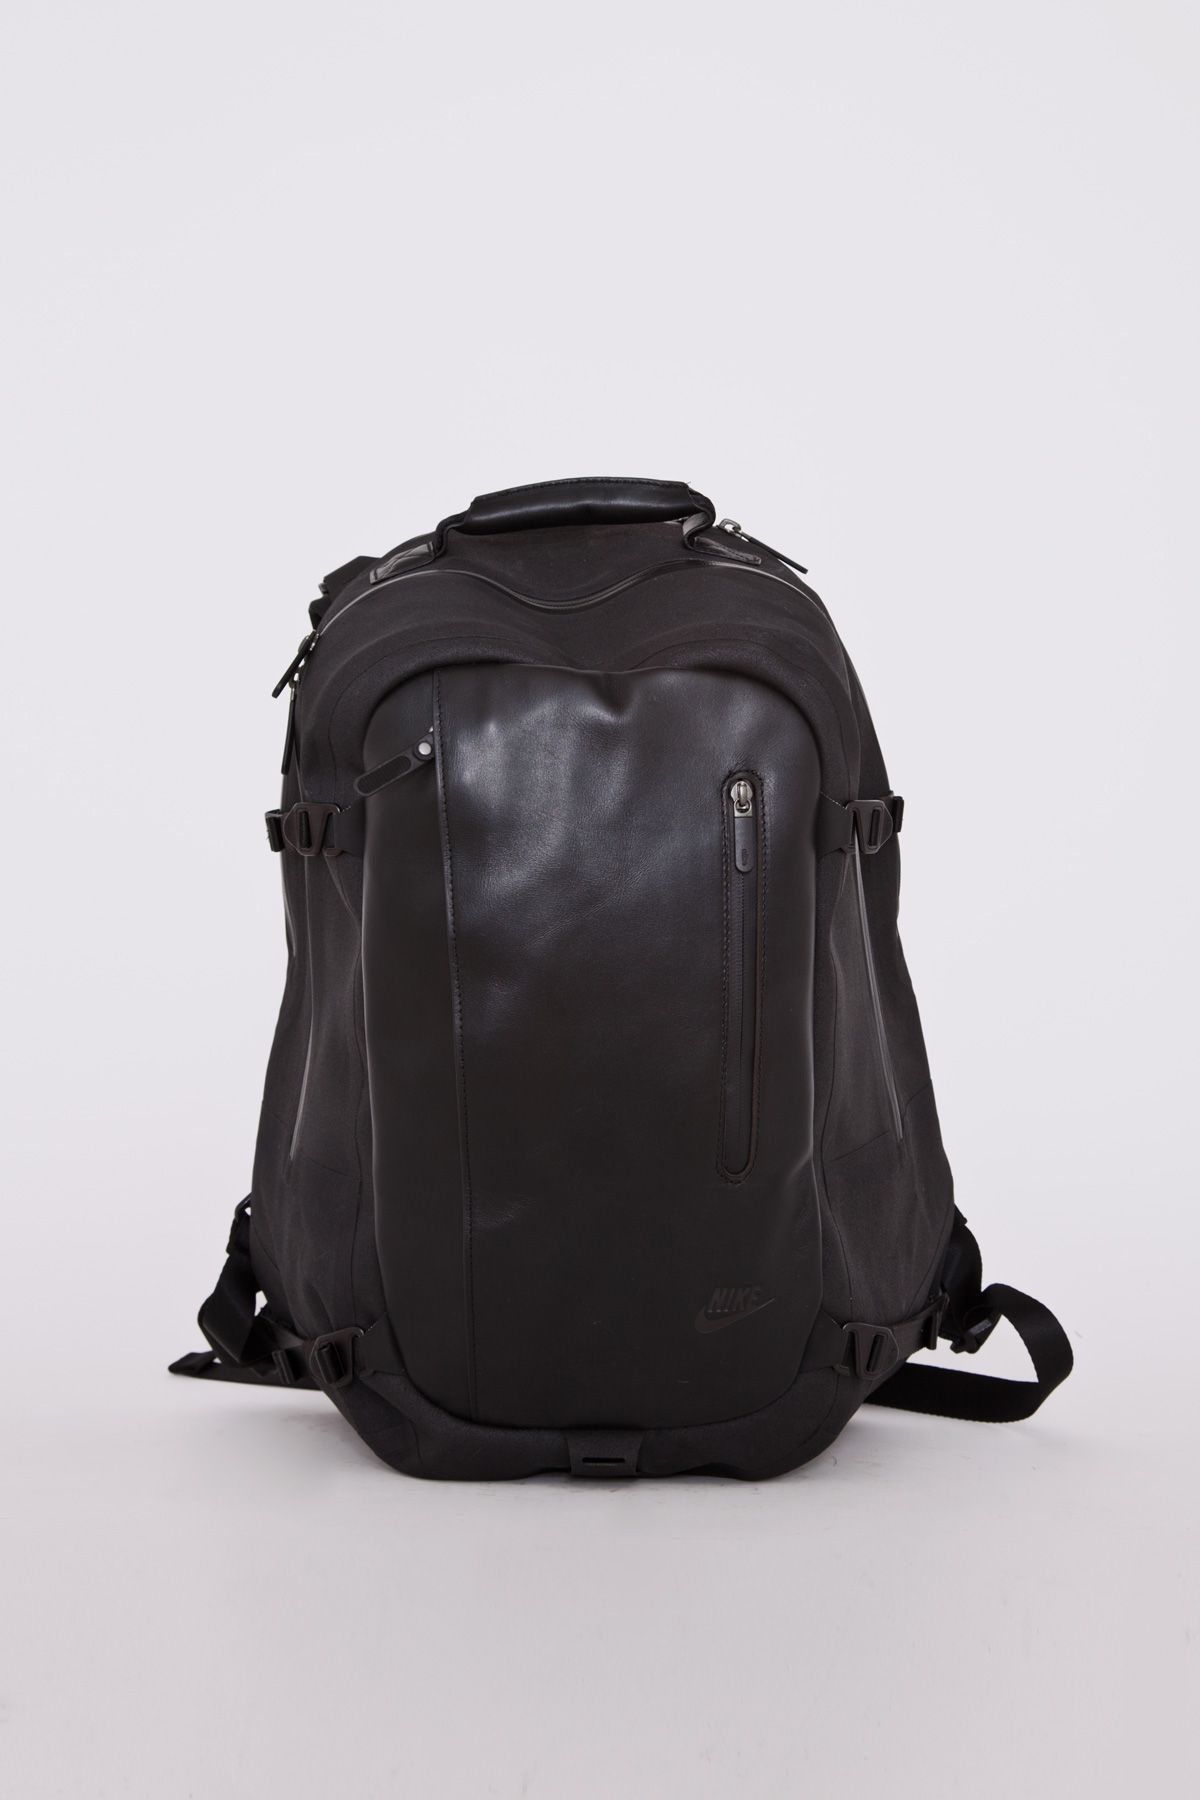 The latest version of the Nike Chayenne backpacks. Hardcover nylon,  waterreppelent with taped seams